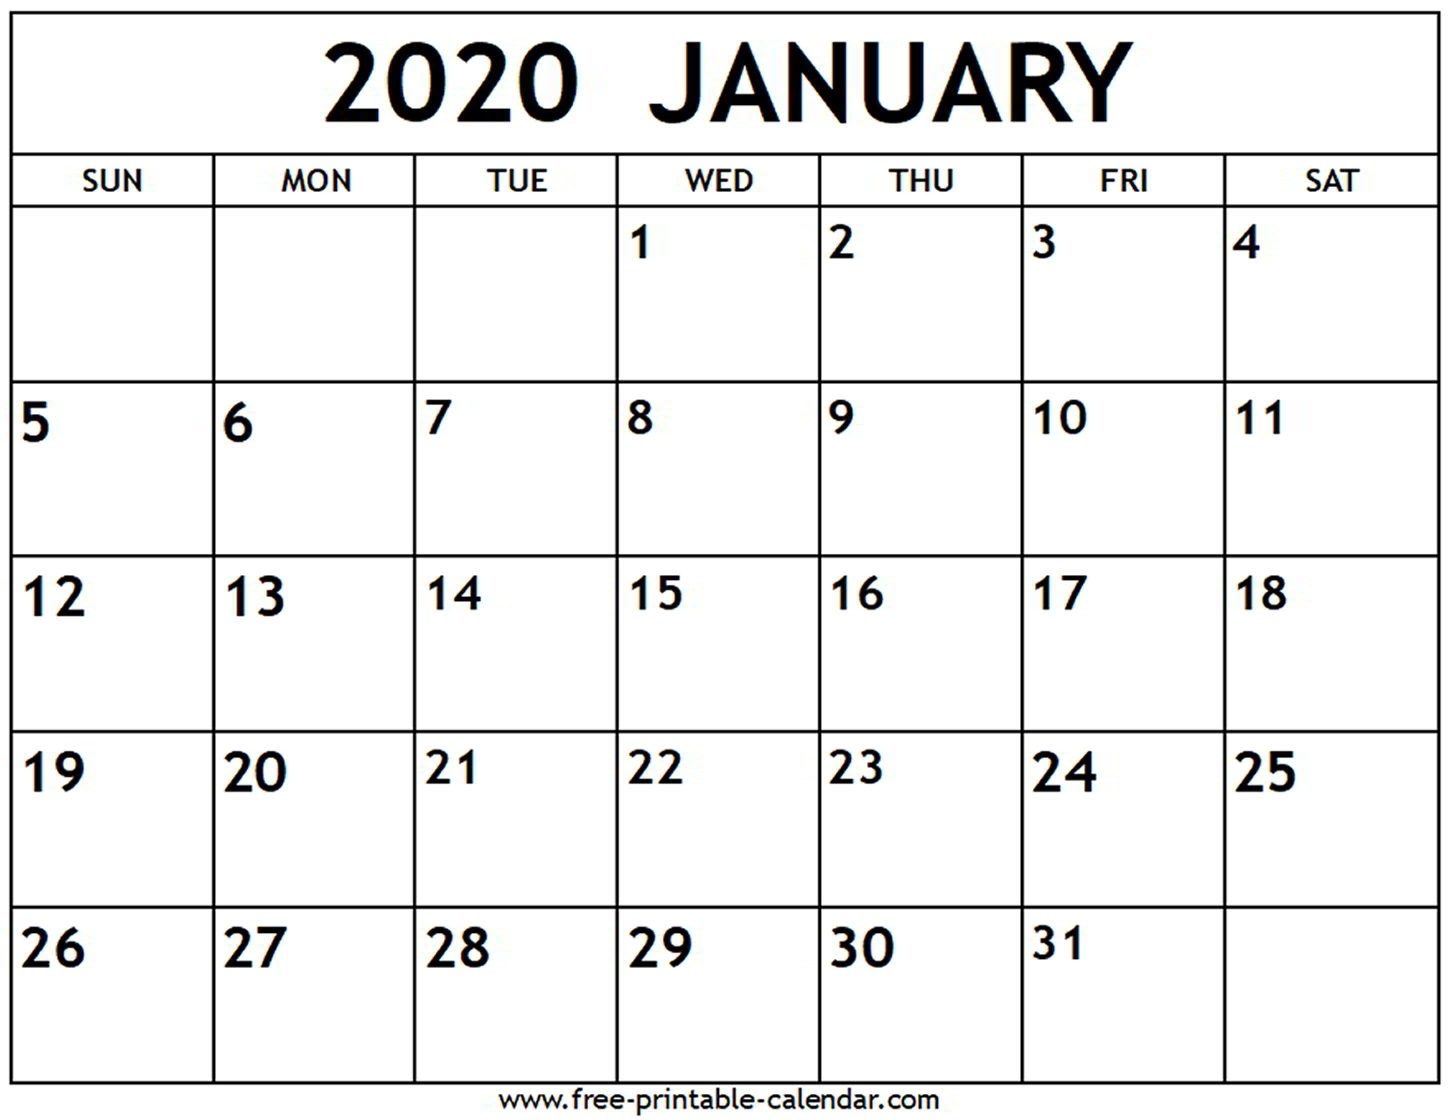 January 2020 Calendar - Free-Printable-Calendar-January To June 2020 Calendar